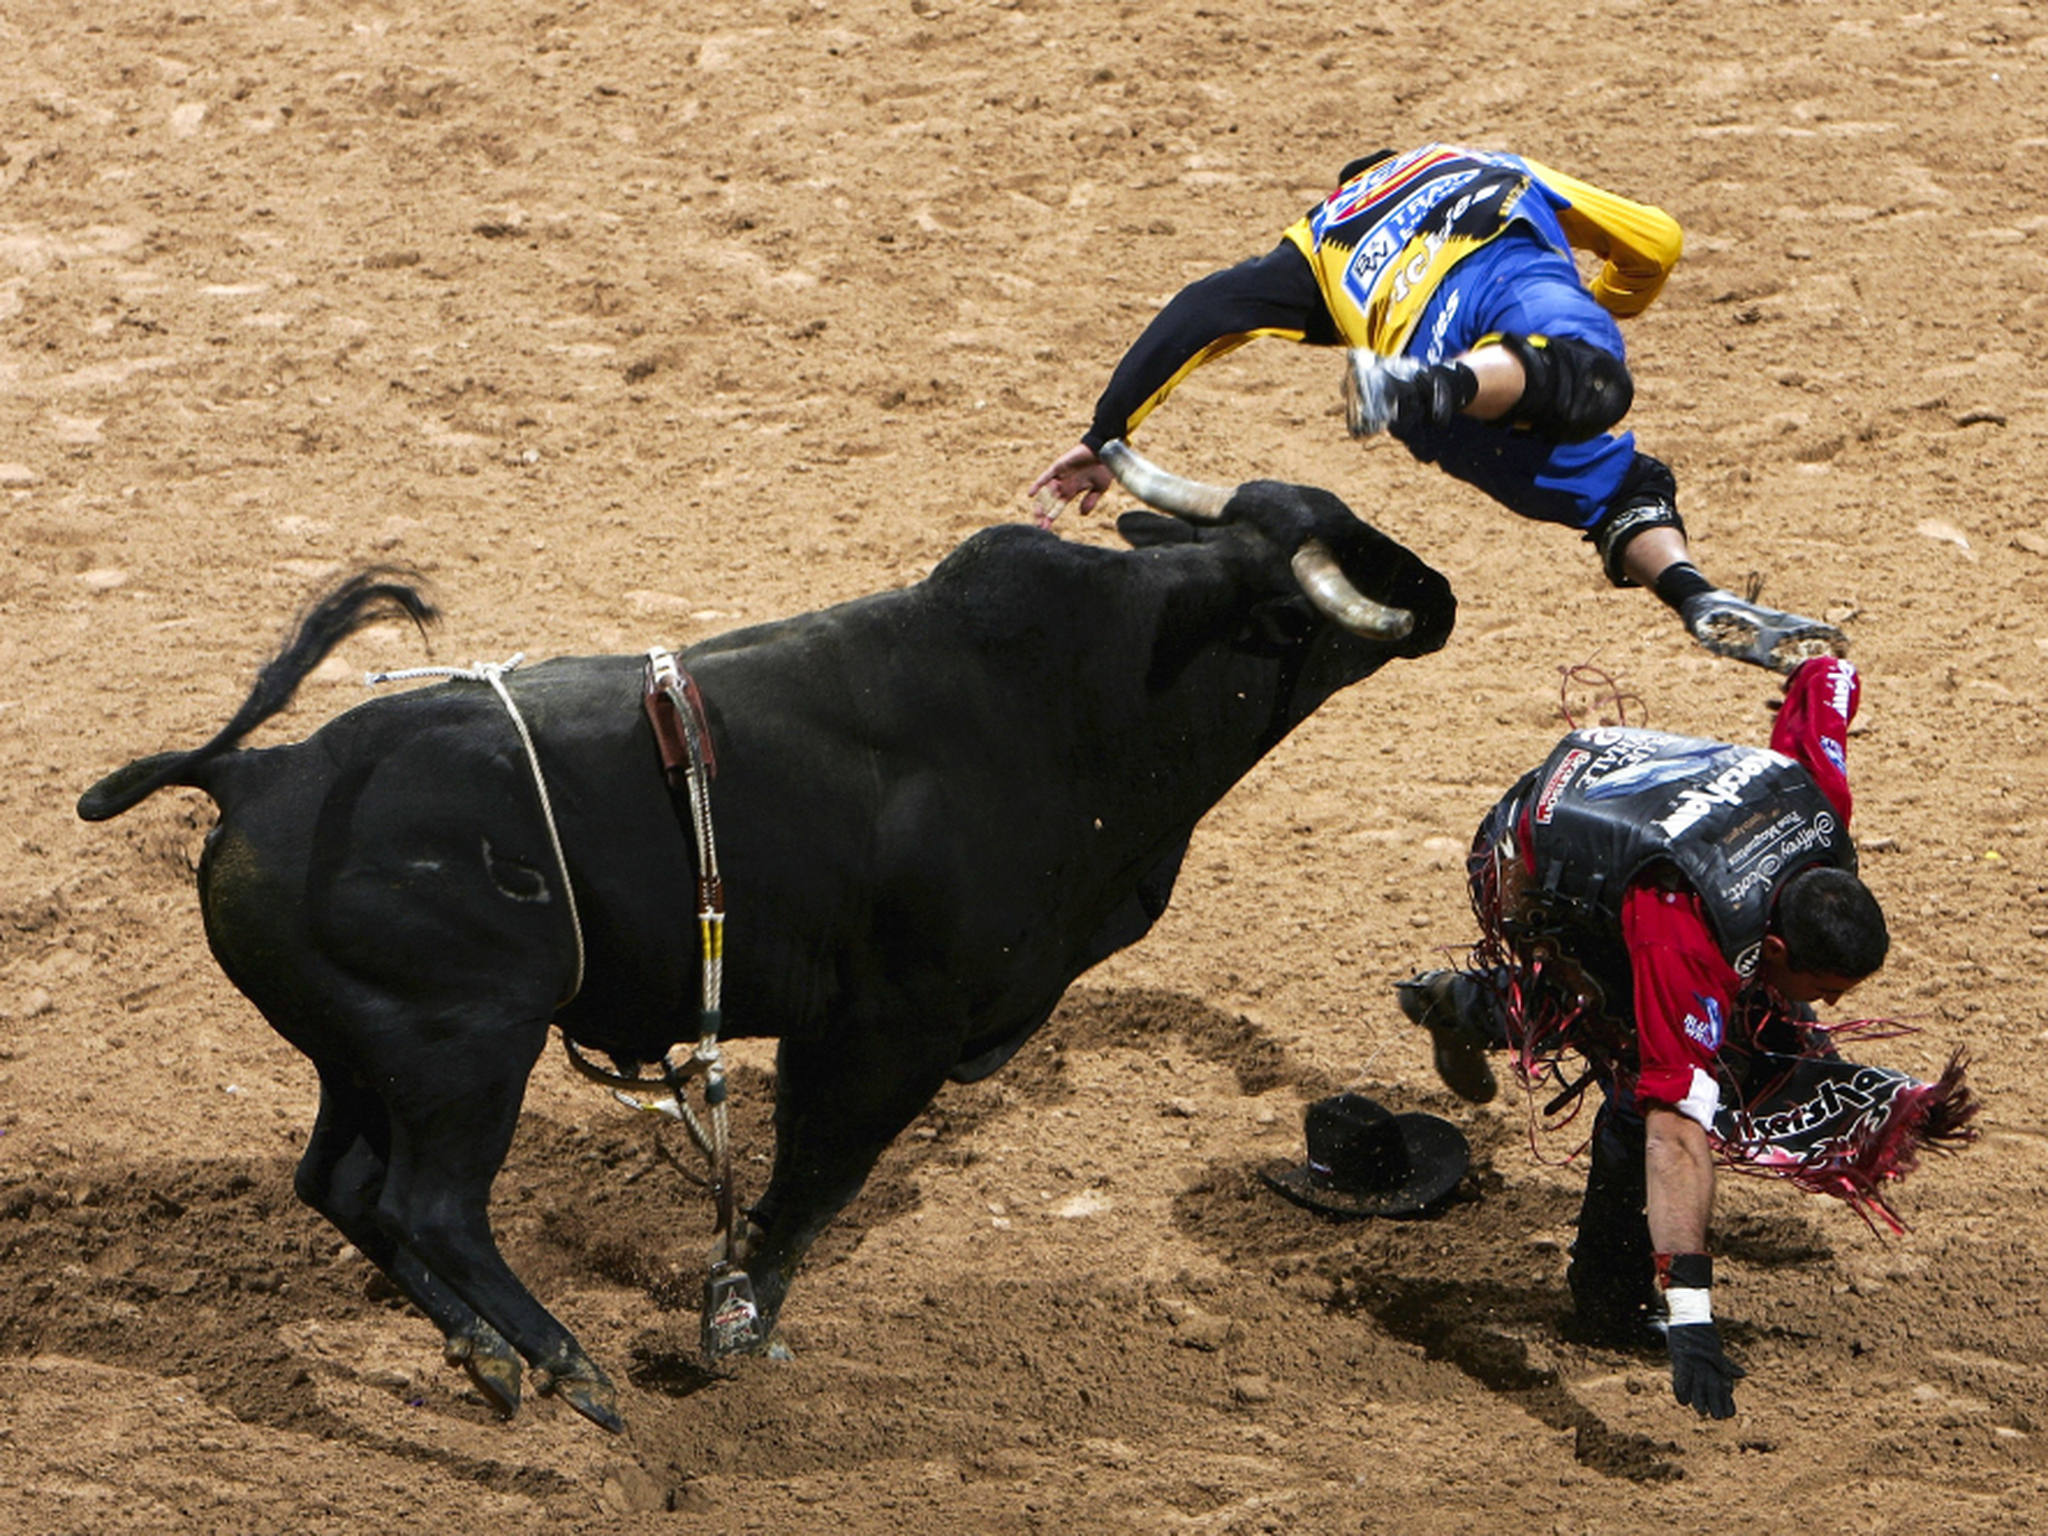 Rodeo Bucking Bulls http://www.nhpr.org/post/rodeo-circuit-bucking-bulls-and-broken-bones